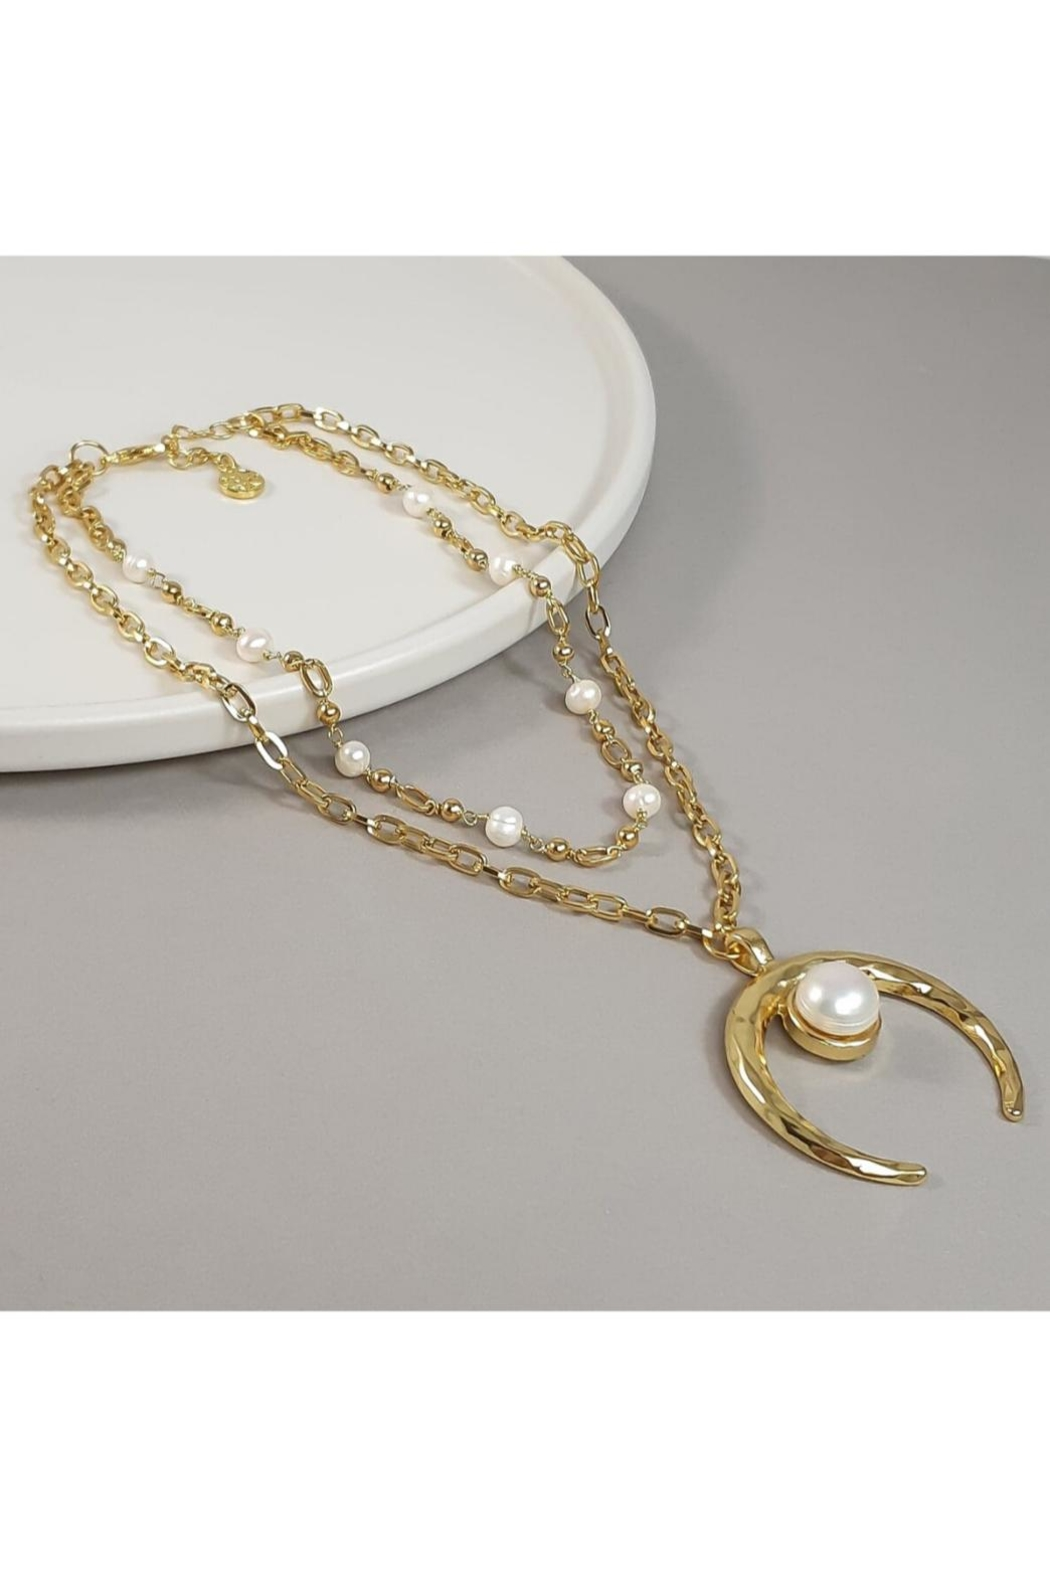 Baggis Accesorios Double Necklace With Pearl And Moon Pendant - Main Image